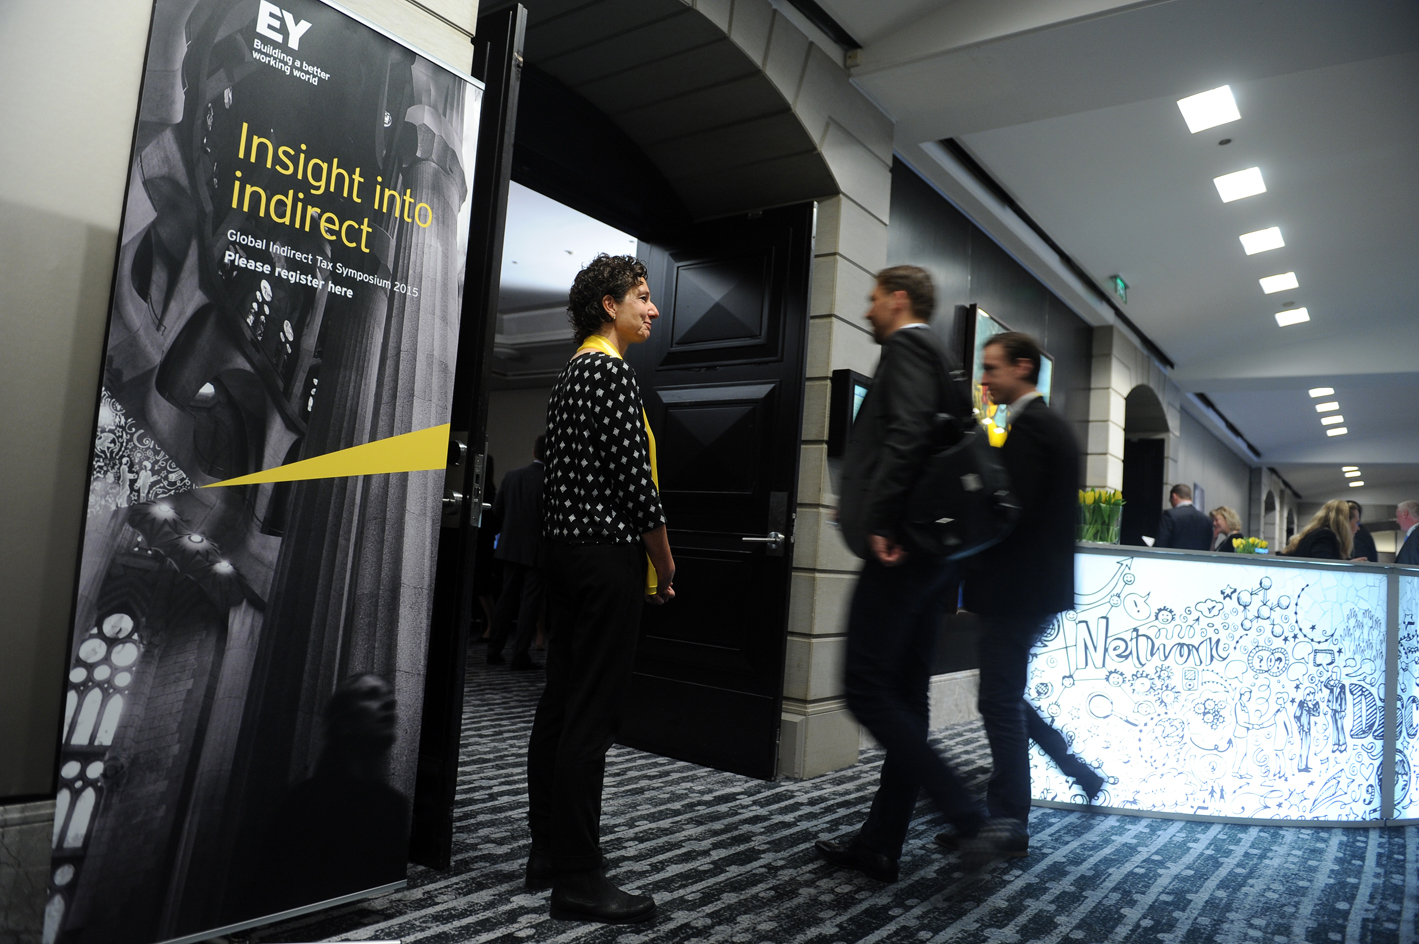 EY 'Insight into indirect' environmental graphics and info desk, Barcelona 2015